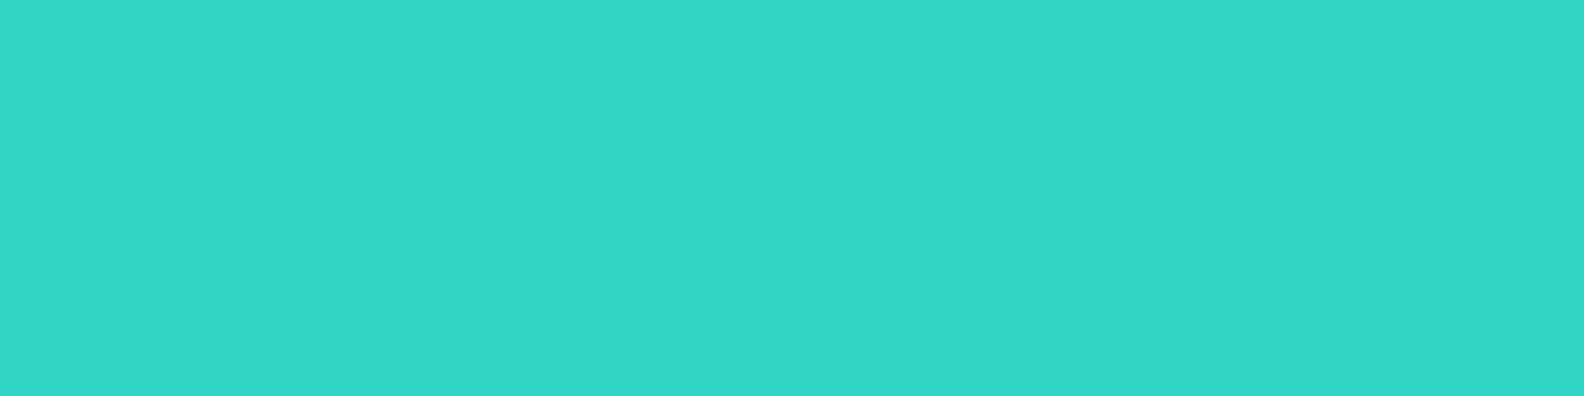 1584x396 Turquoise Solid Color Background